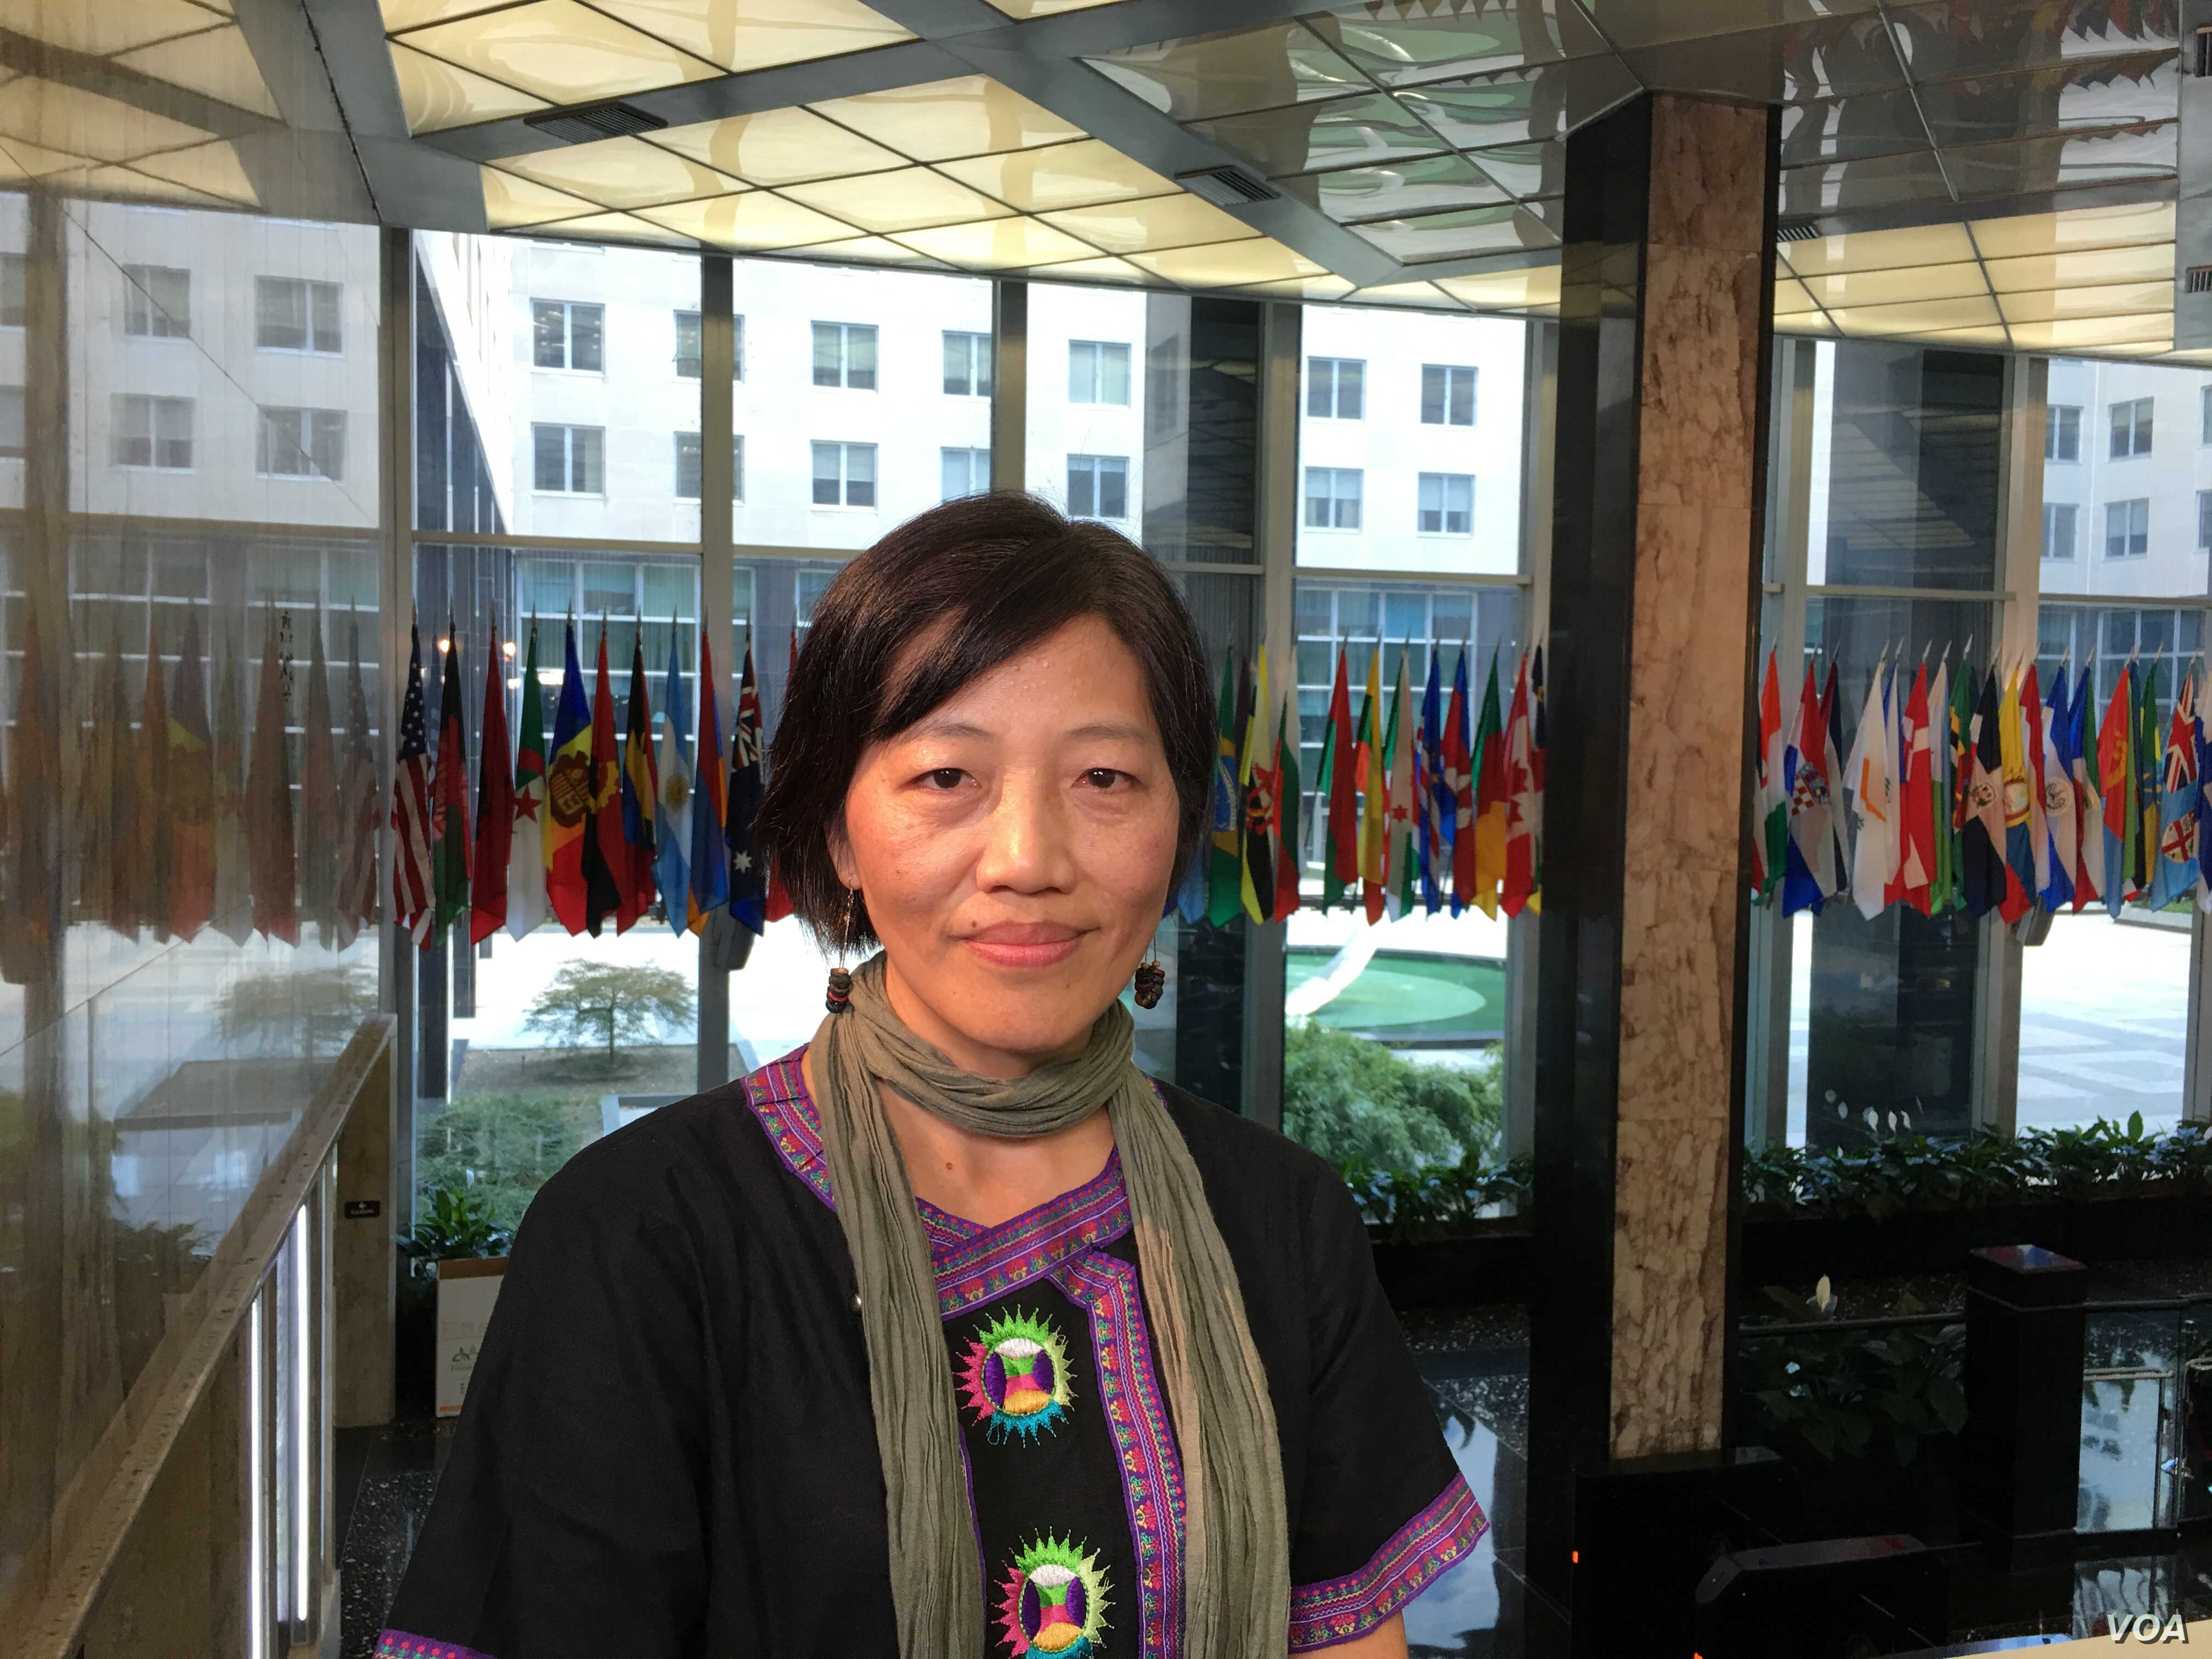 Allison Lee, the co-founder of the Yilan Migrant Fishermen Union, was recognized by the United States for safeguarding the rights of foreign fishermen working in Taiwan.